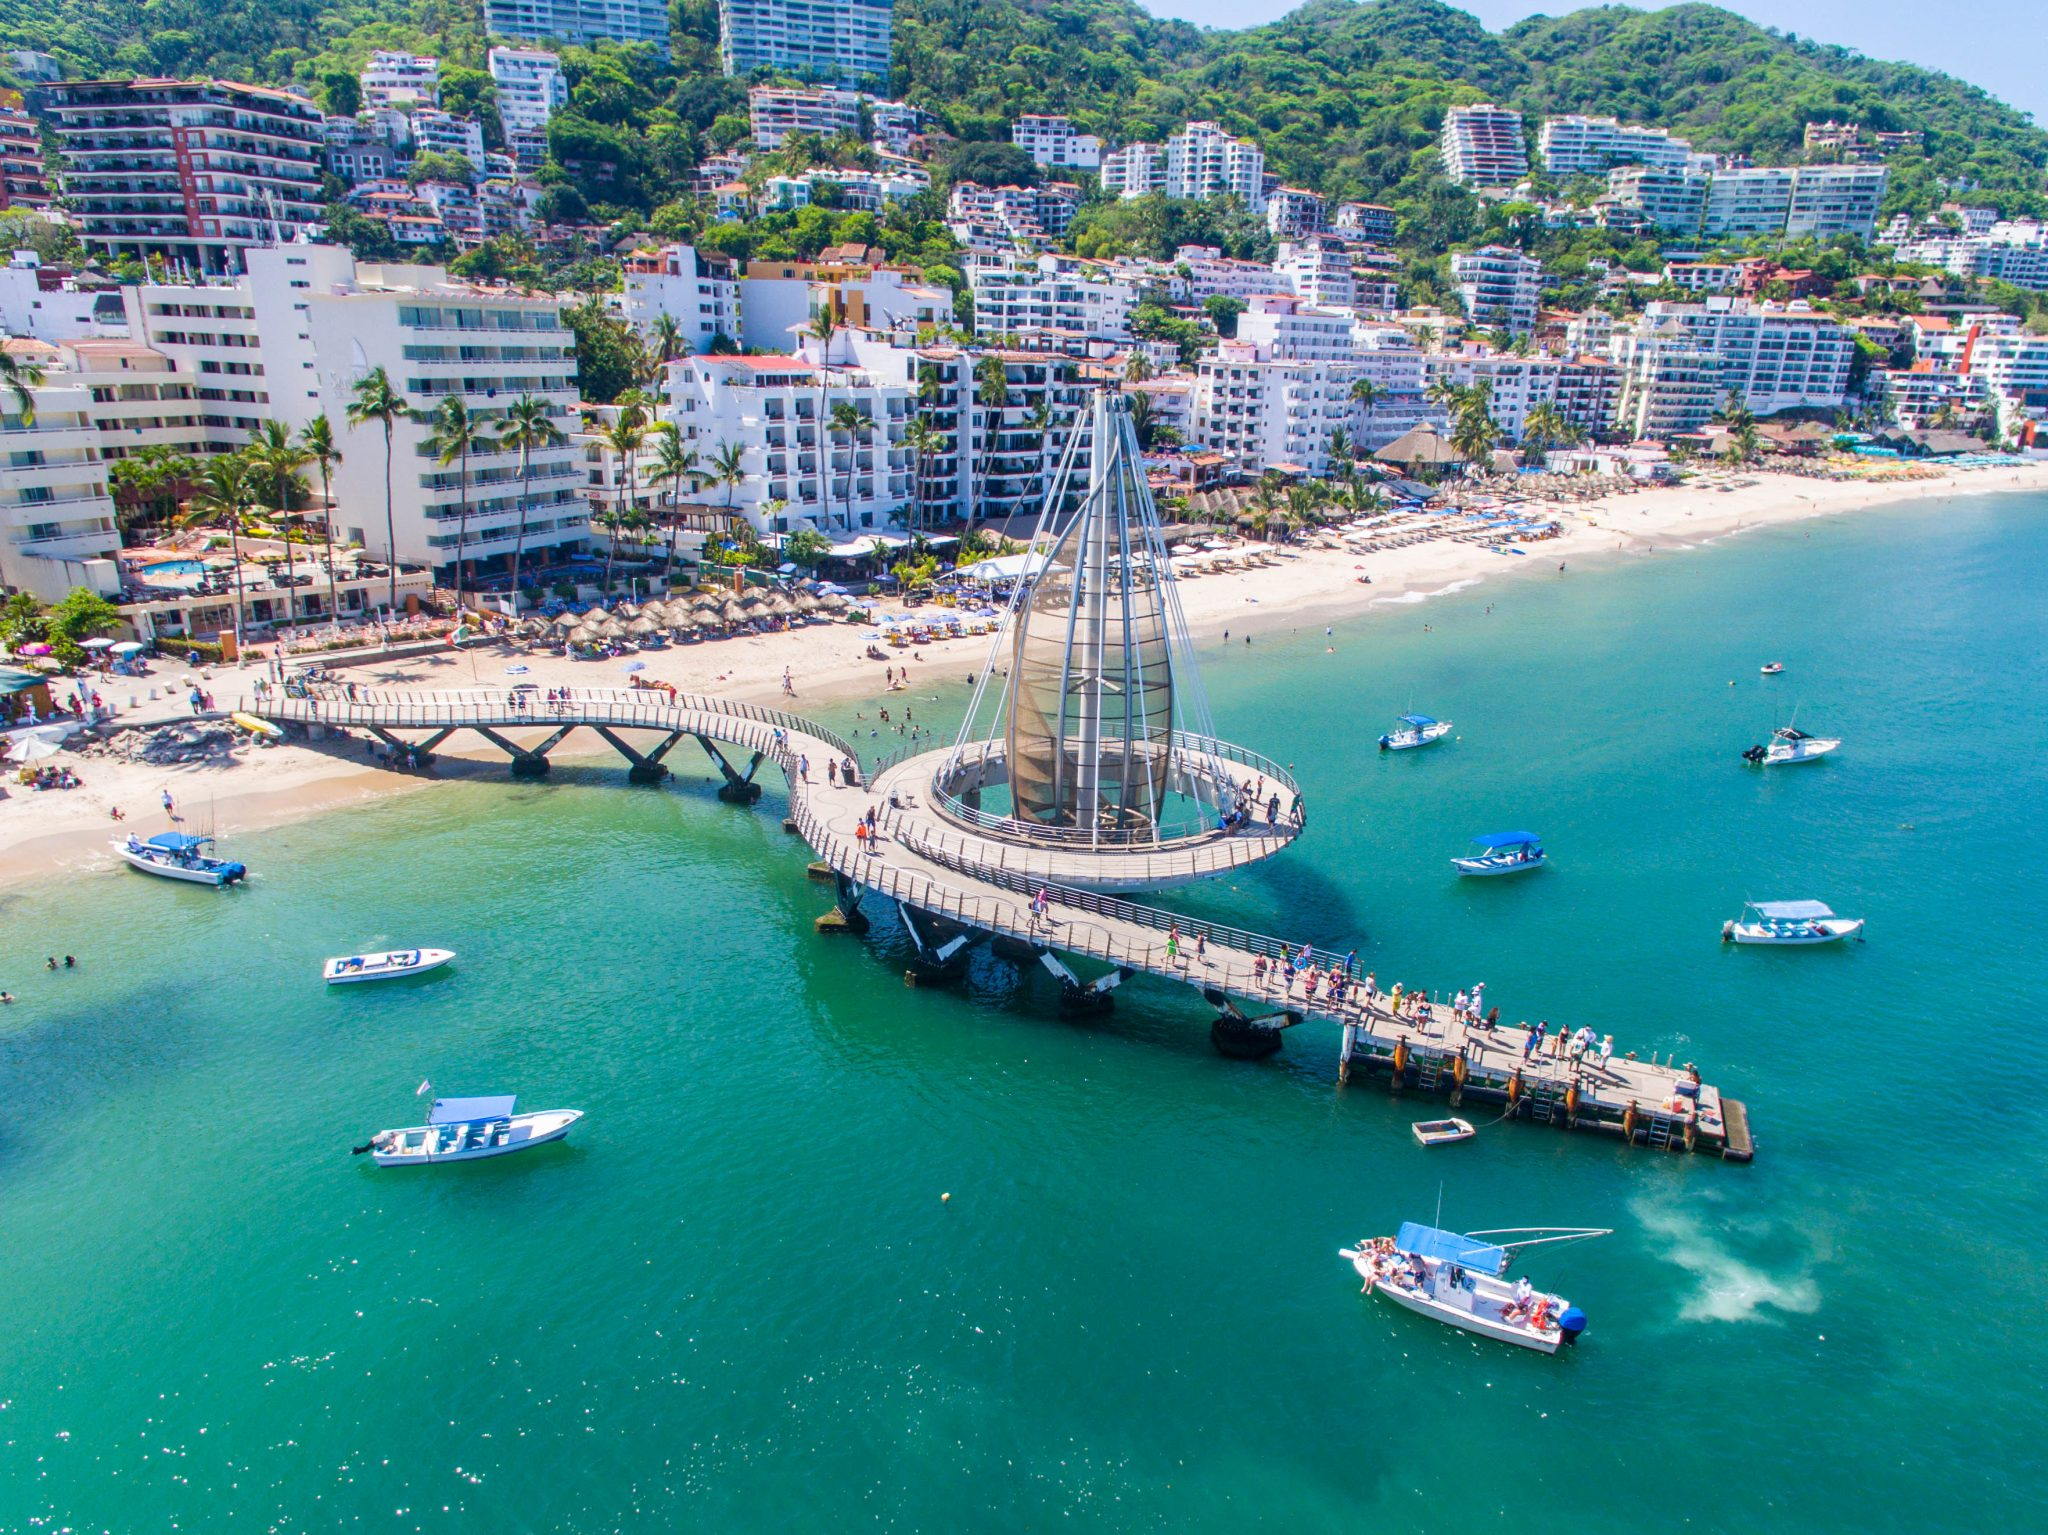 Puerto Vallarta bachelorette destination